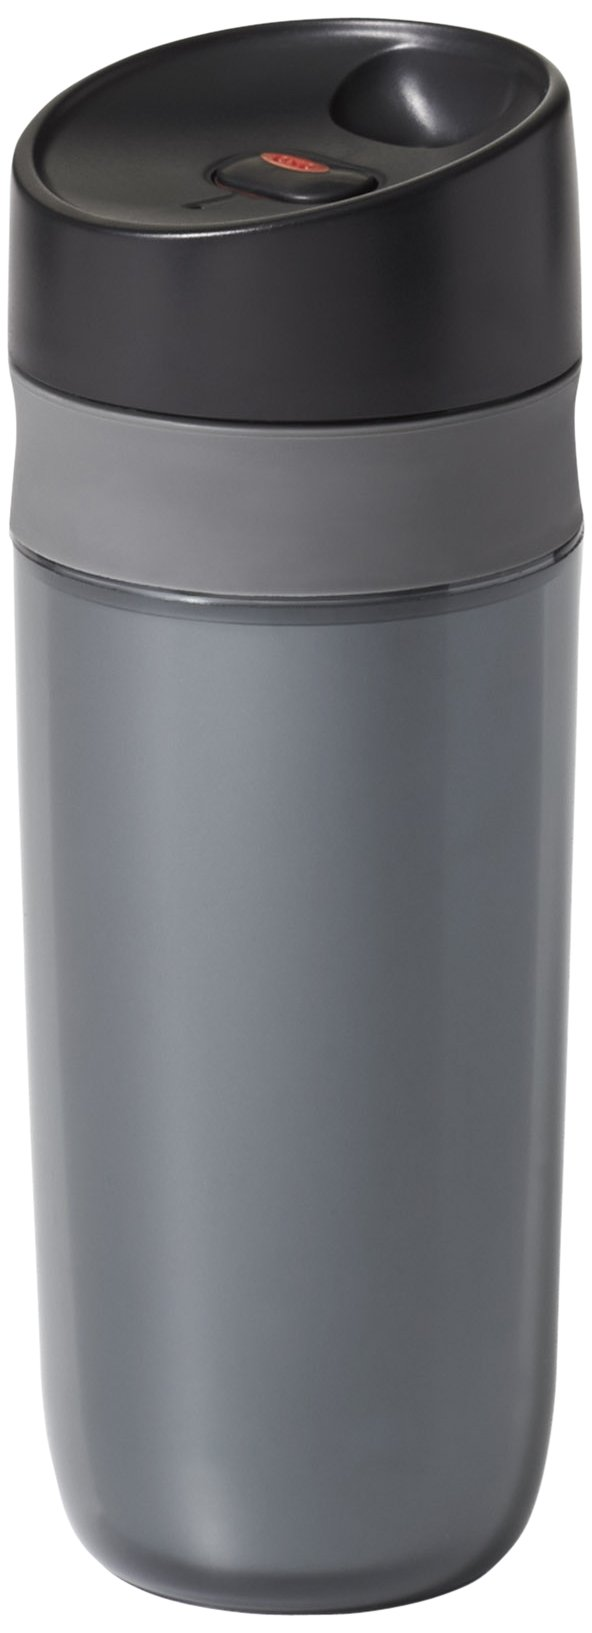 OXO Good Grips Double Wall Travel Mug, Graphite- 15 ounce